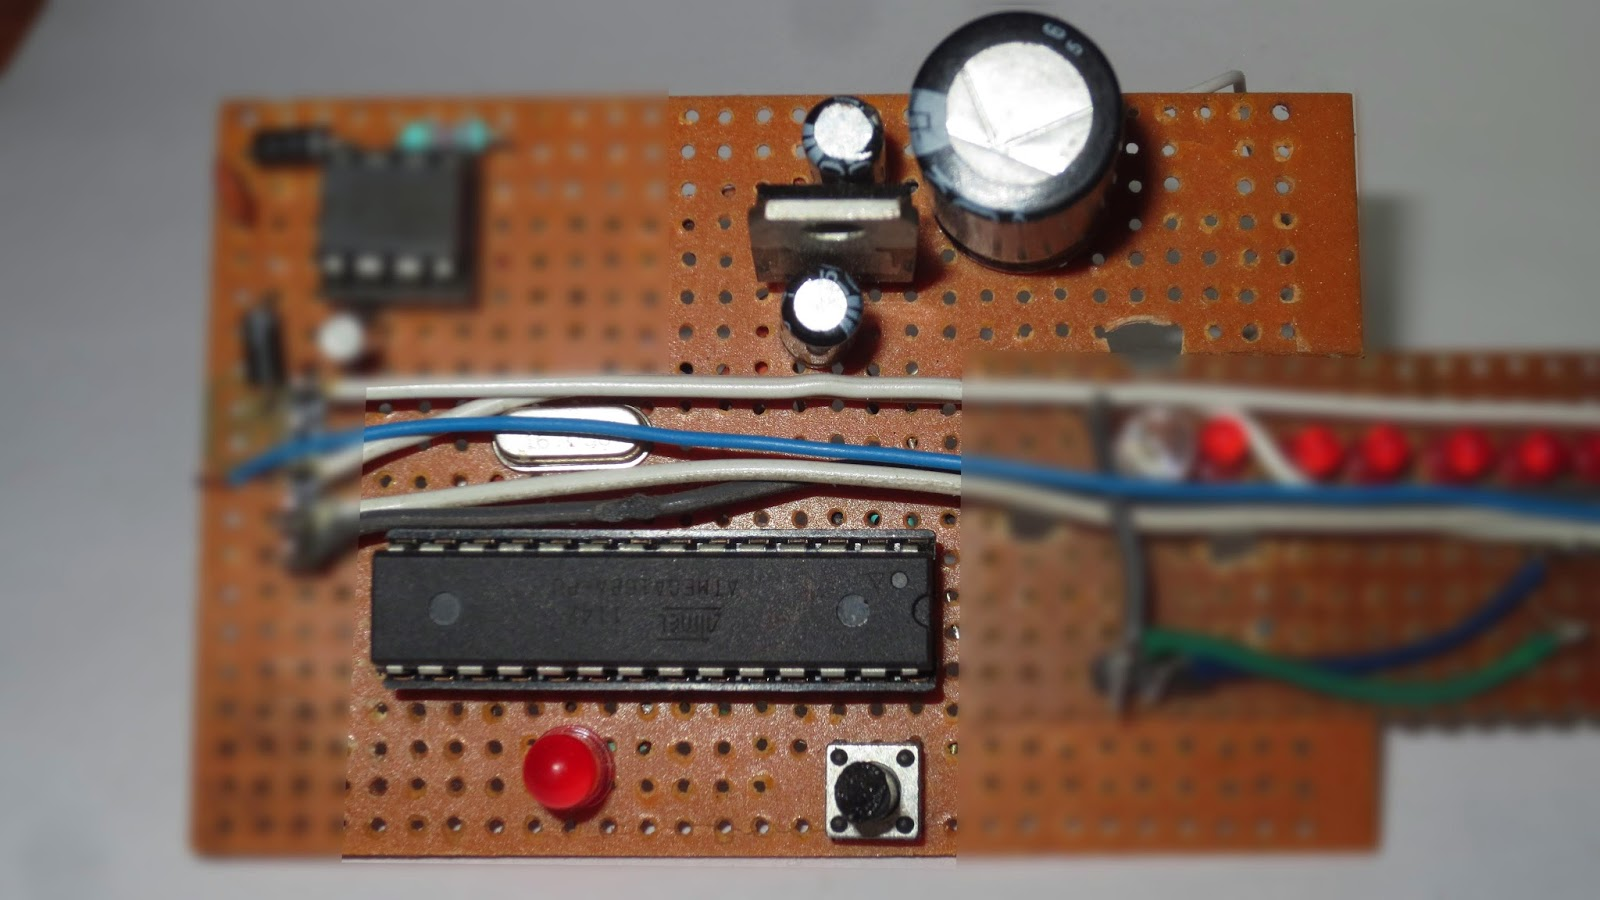 Add A Timer IC On The Circuit.